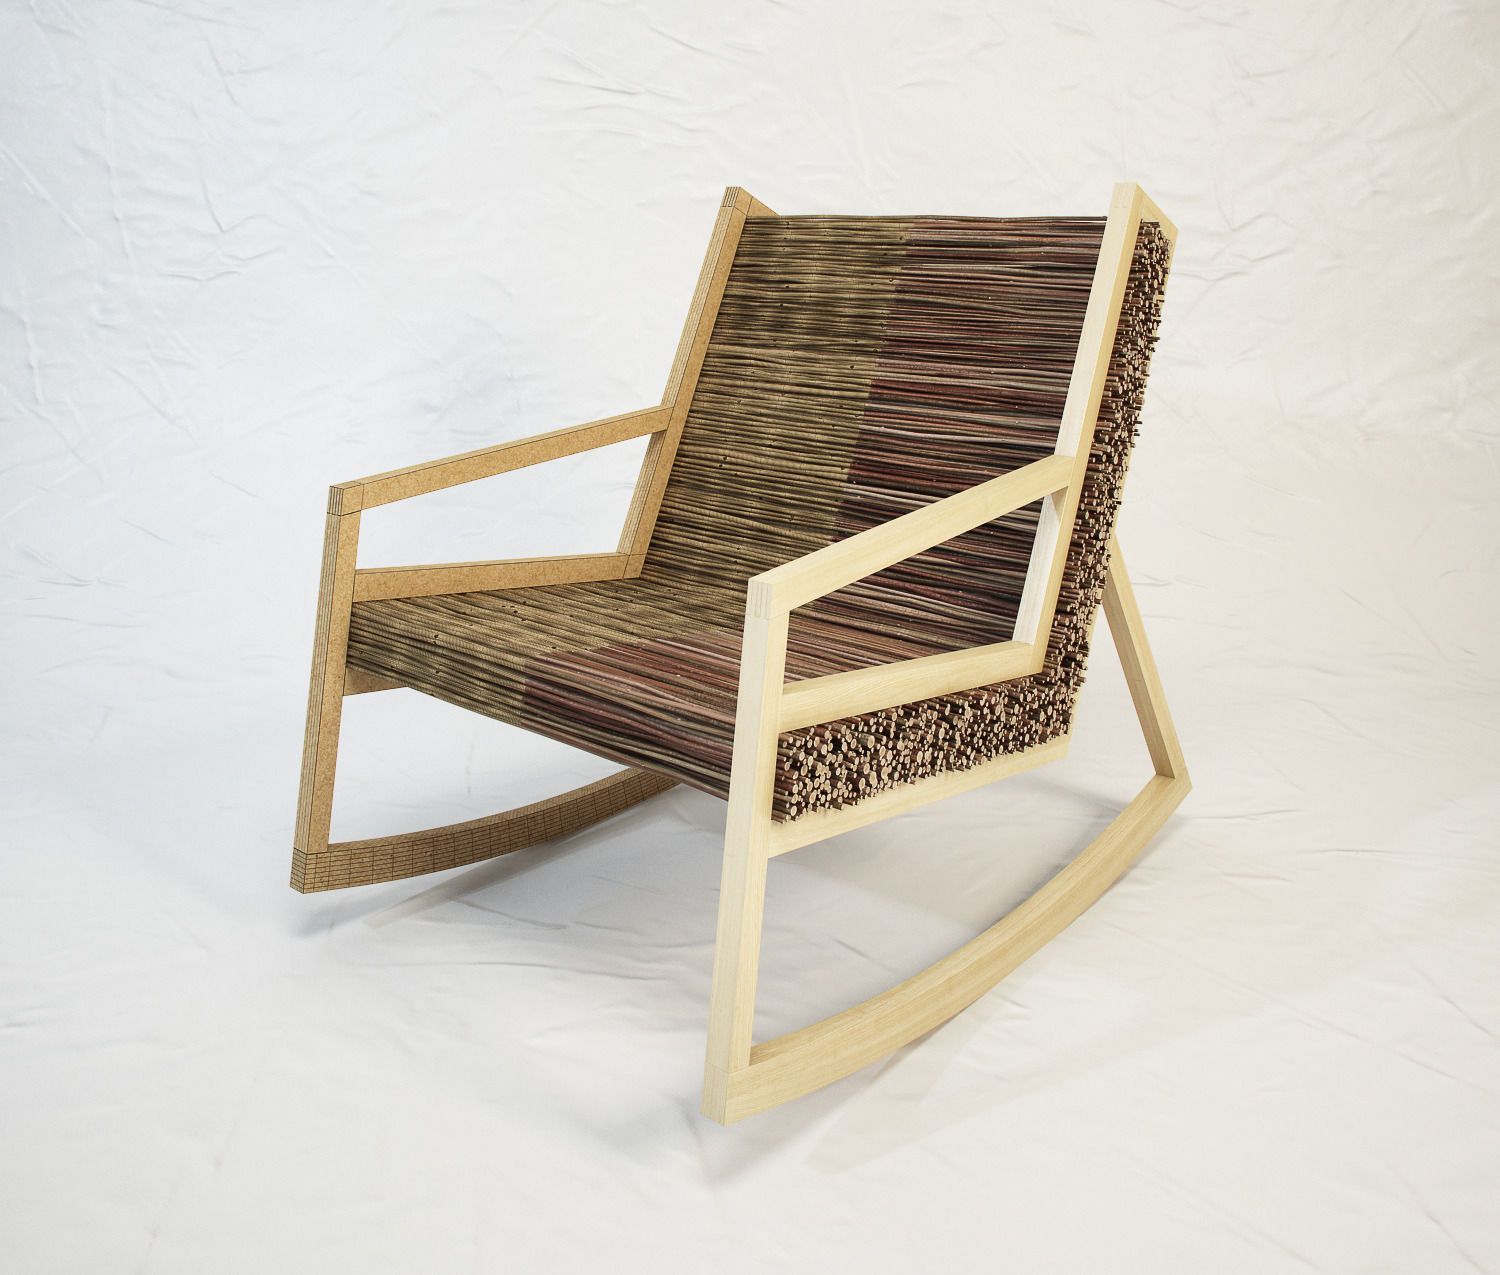 STUDIO VACEK Haluz  rocking chair by Tomas Vacek